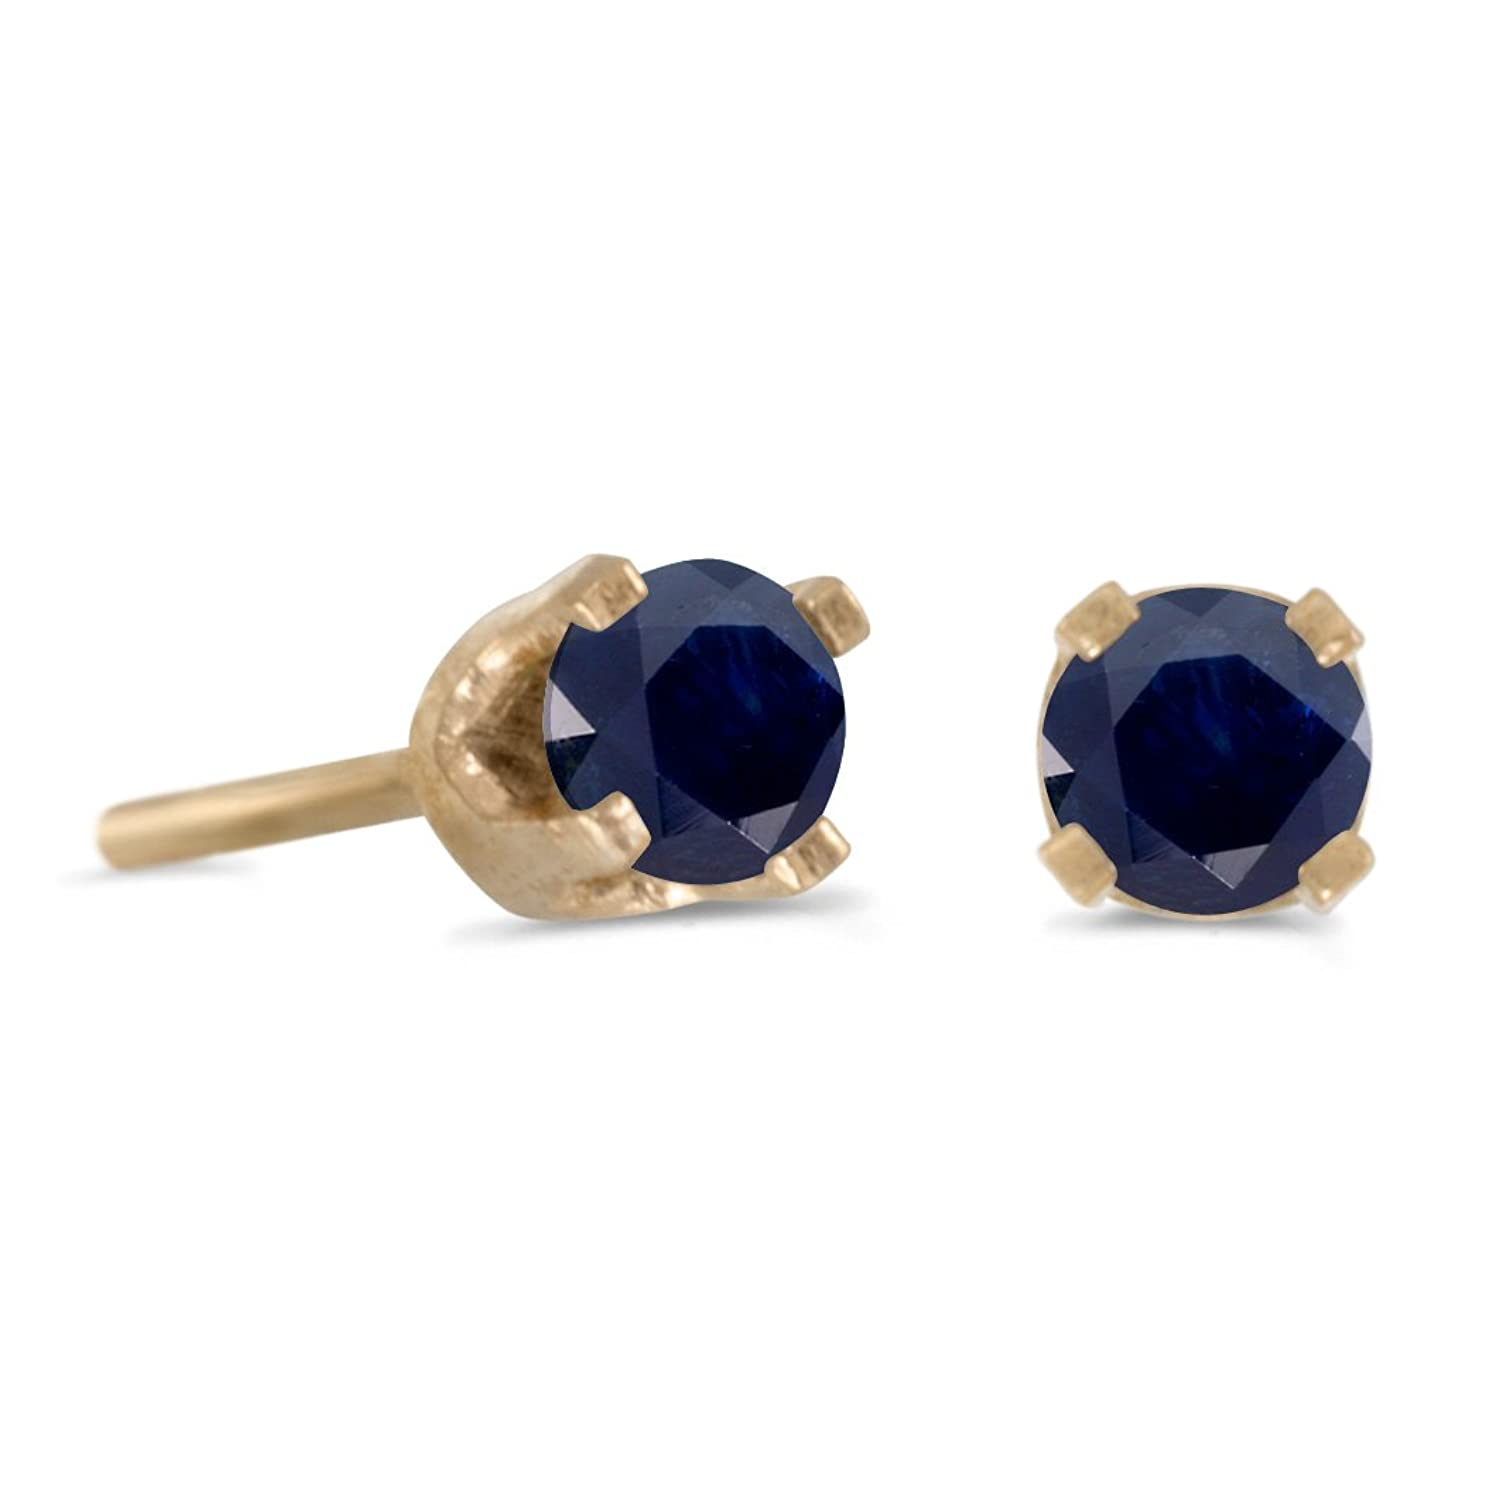 com earrings jewelry plated knob dp bling gold onyx round stud cz simulated amazon